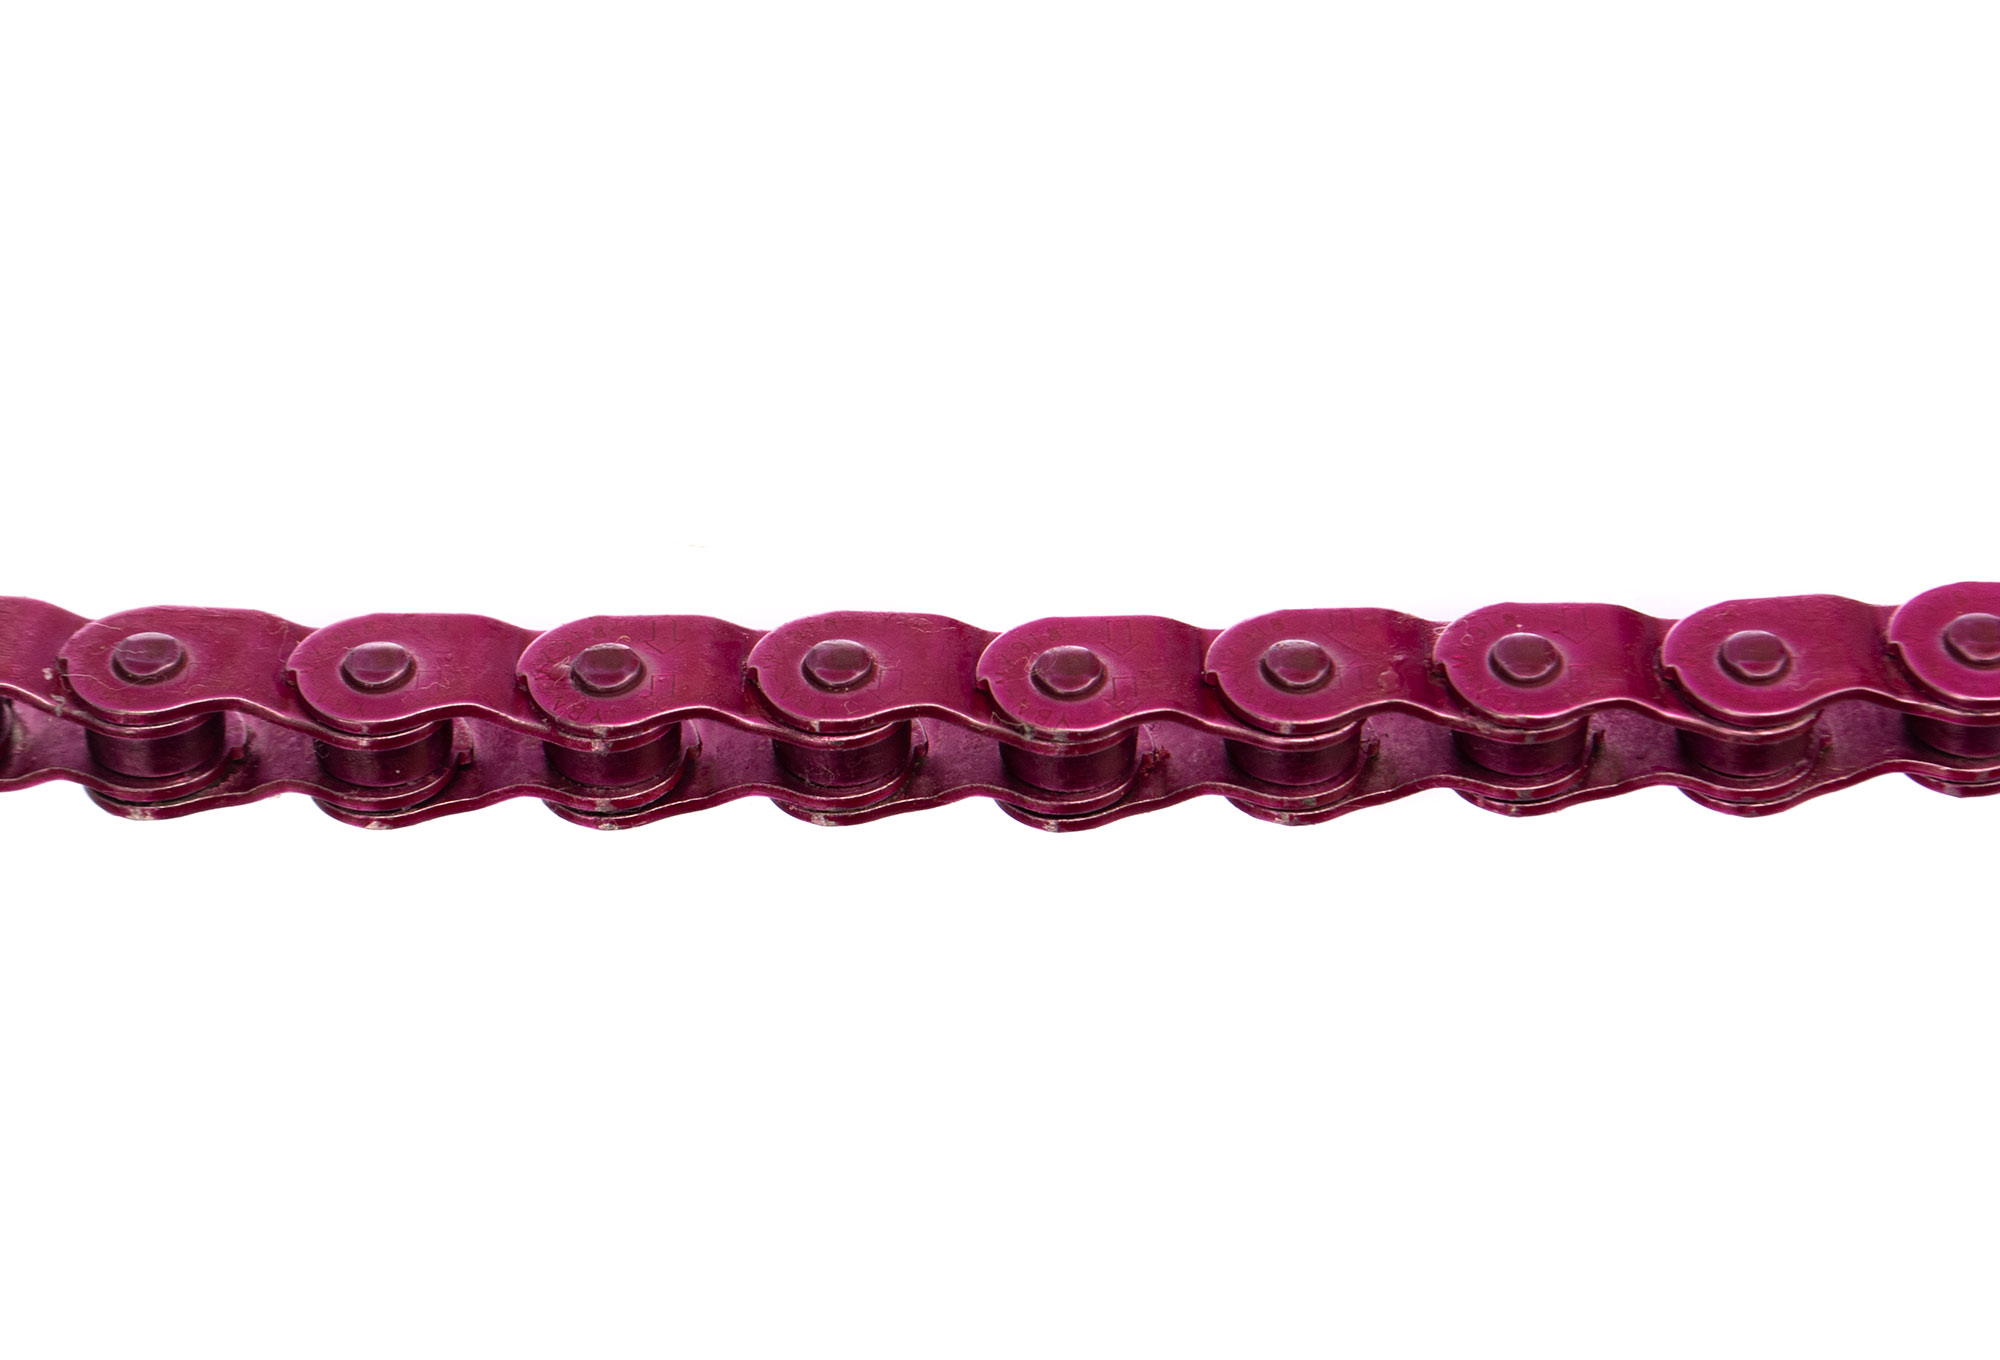 BMX Bike Chain Single Speed 1//2 x 1//8 x 102L Pink YBN MK918 Half Link Track